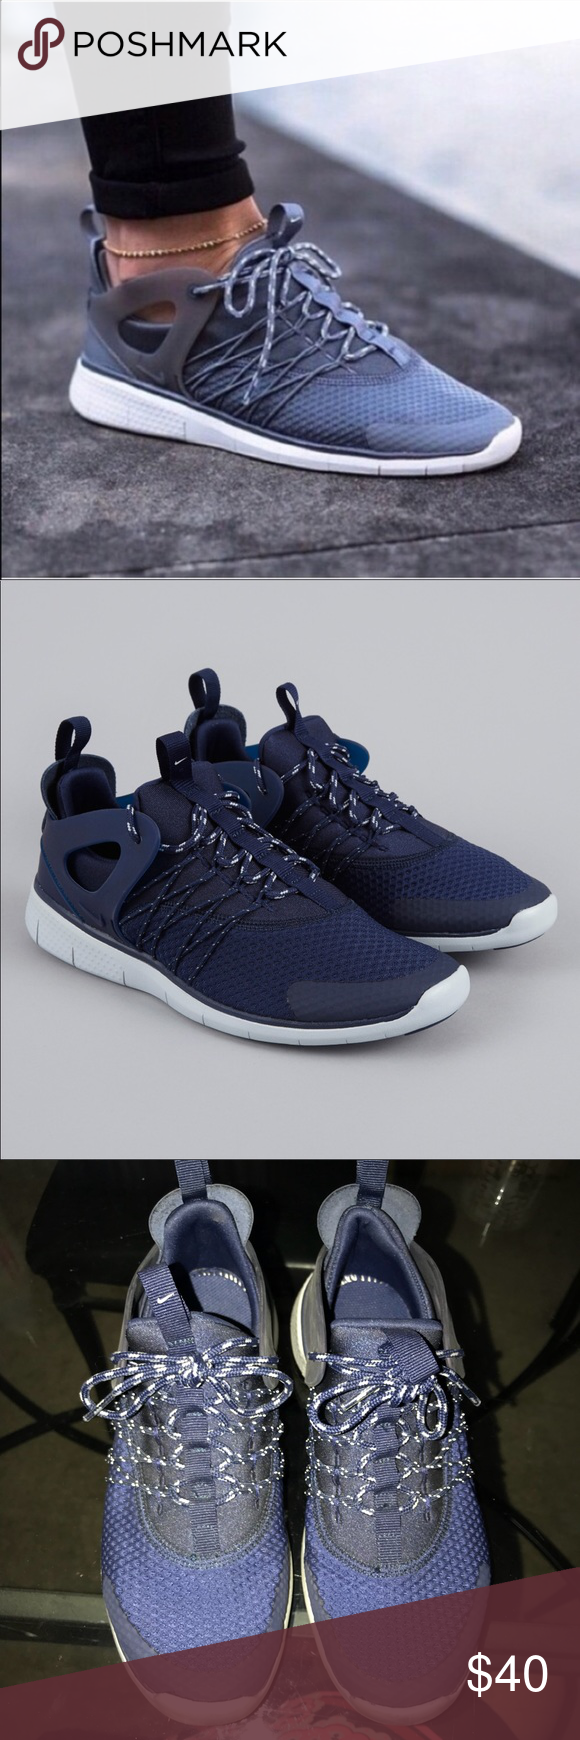 98f4709ad0fde Nike Free Viritous Navy Blue Sneakers Gently worn still look great. When  theyre cleaned they